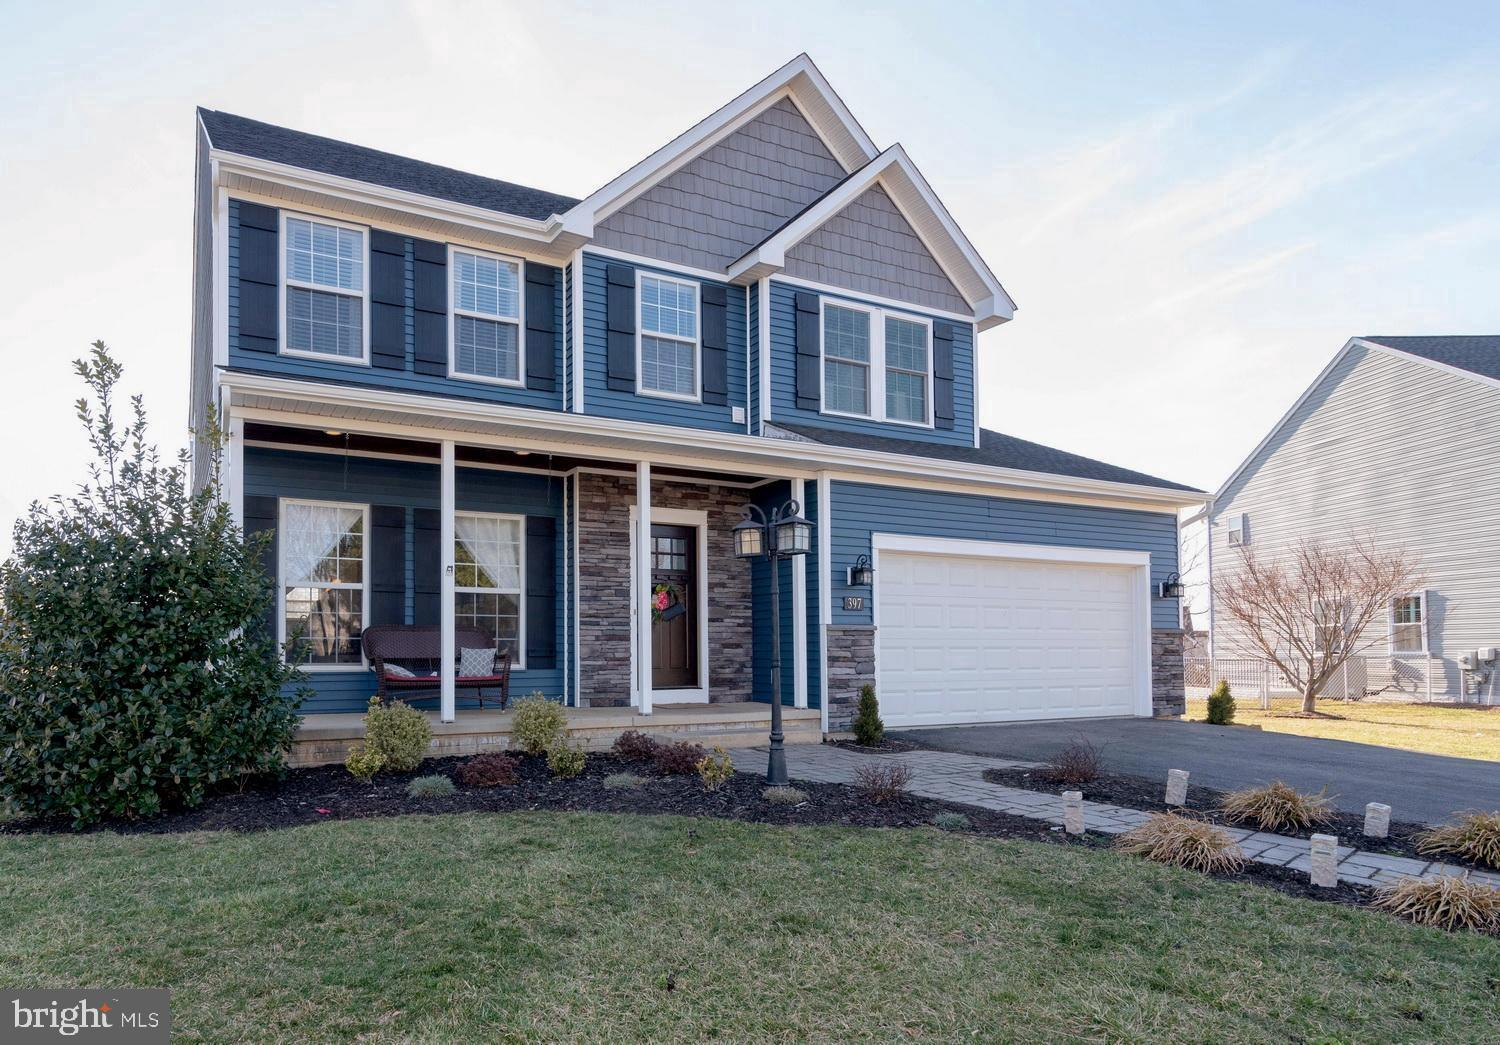 Adorable Colonial-style home that looks like new!  Brand new roof and siding in 2018. Beautiful mold